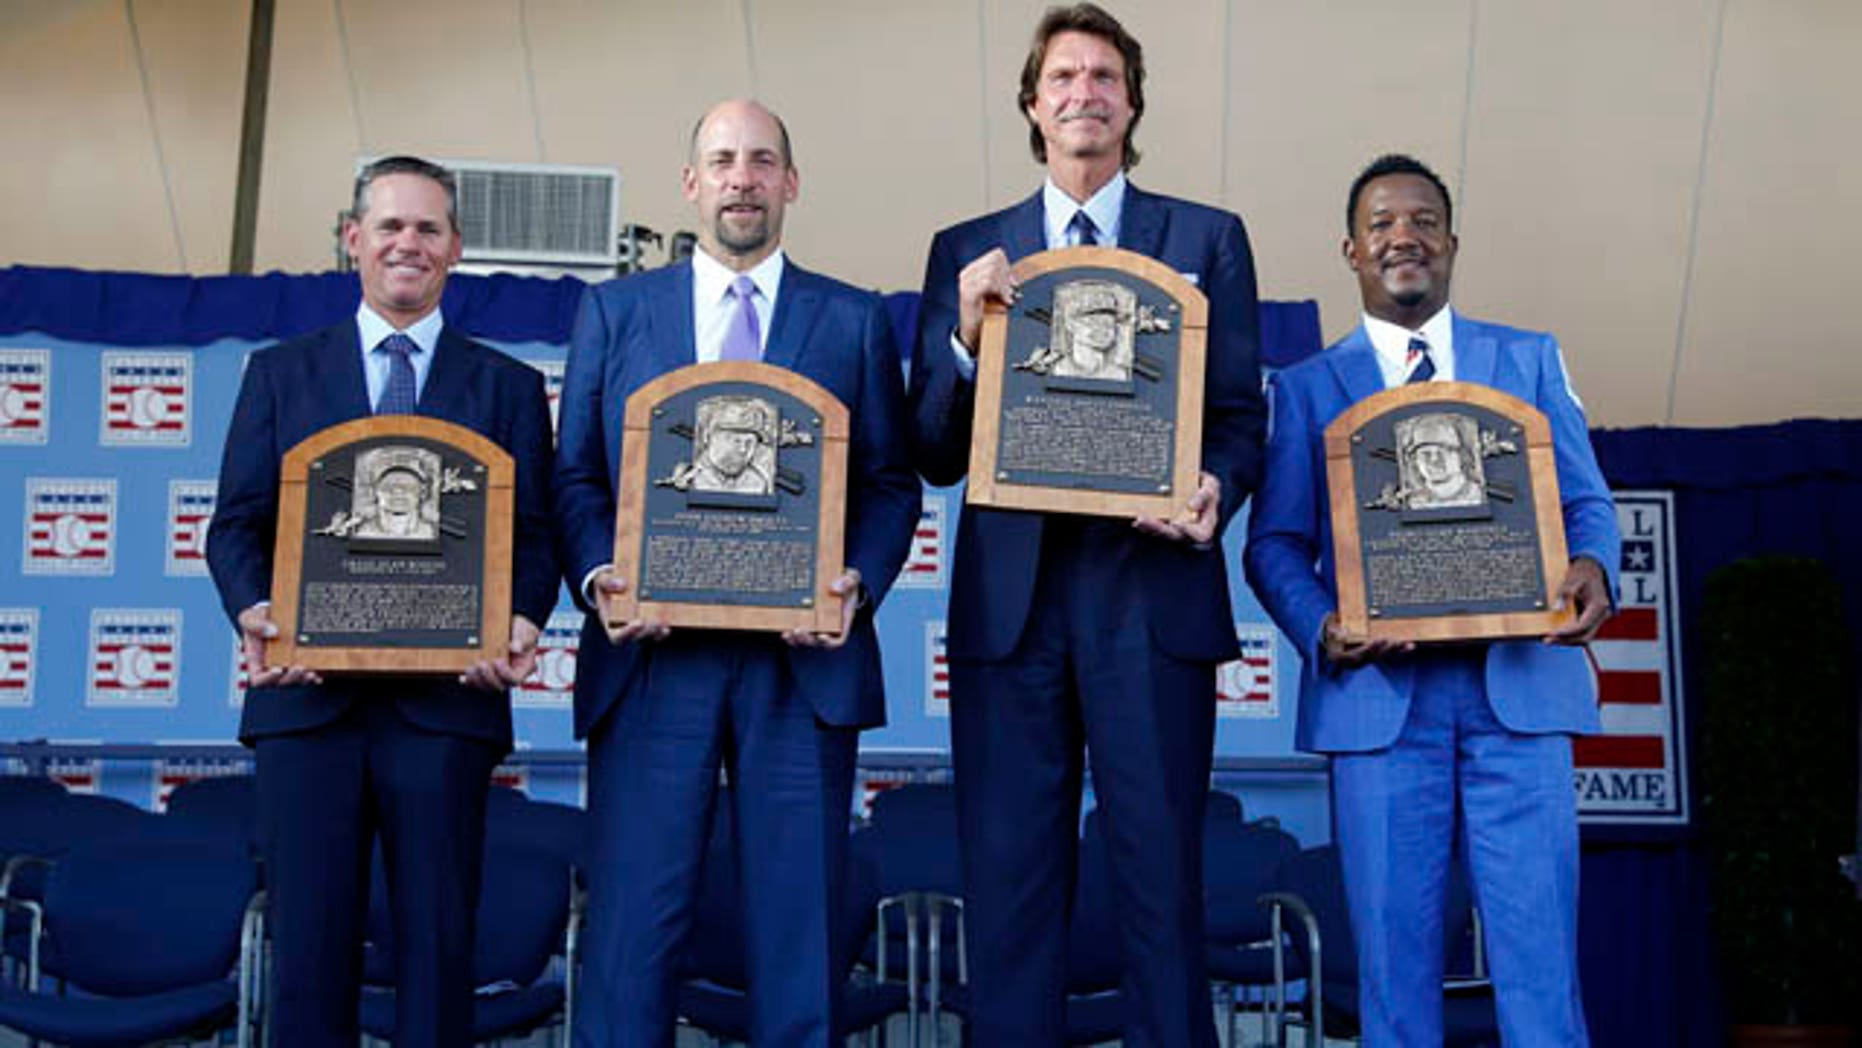 July 26, 2015: Newly-inducted National Baseball Hall of Famers from left to right, Craig Biggio, John Smoltz, Randy Johnson and Pedro Martinez hold their plaques after an induction ceremony at the Clark Sports Center, in Cooperstown, N.Y. (AP Photo/Mike Groll)